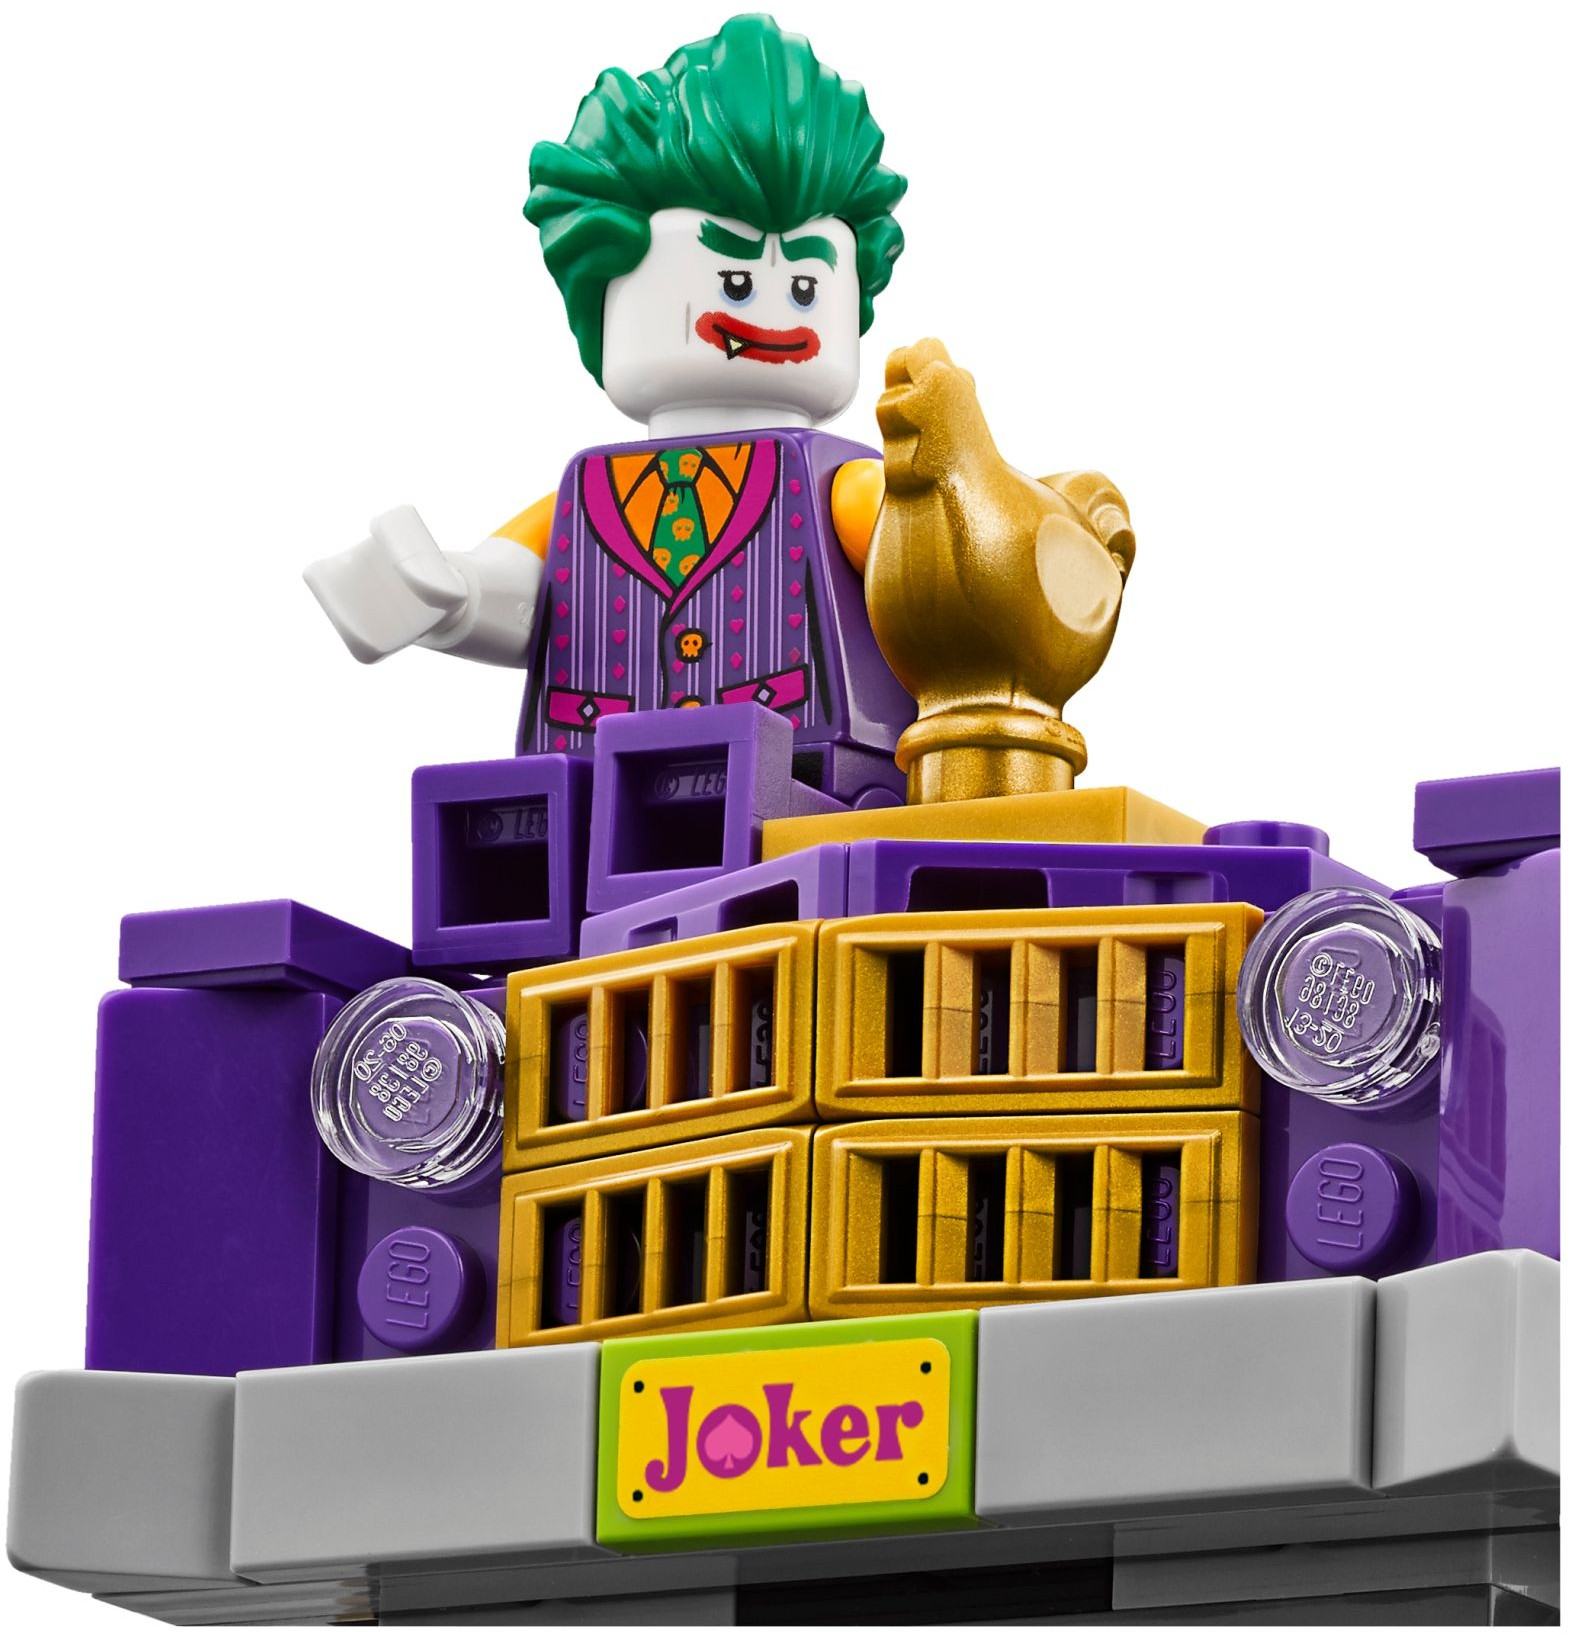 https://i2.wp.com/images.brickset.com/sets/AdditionalImages/70906-1/70906_alt6.jpg